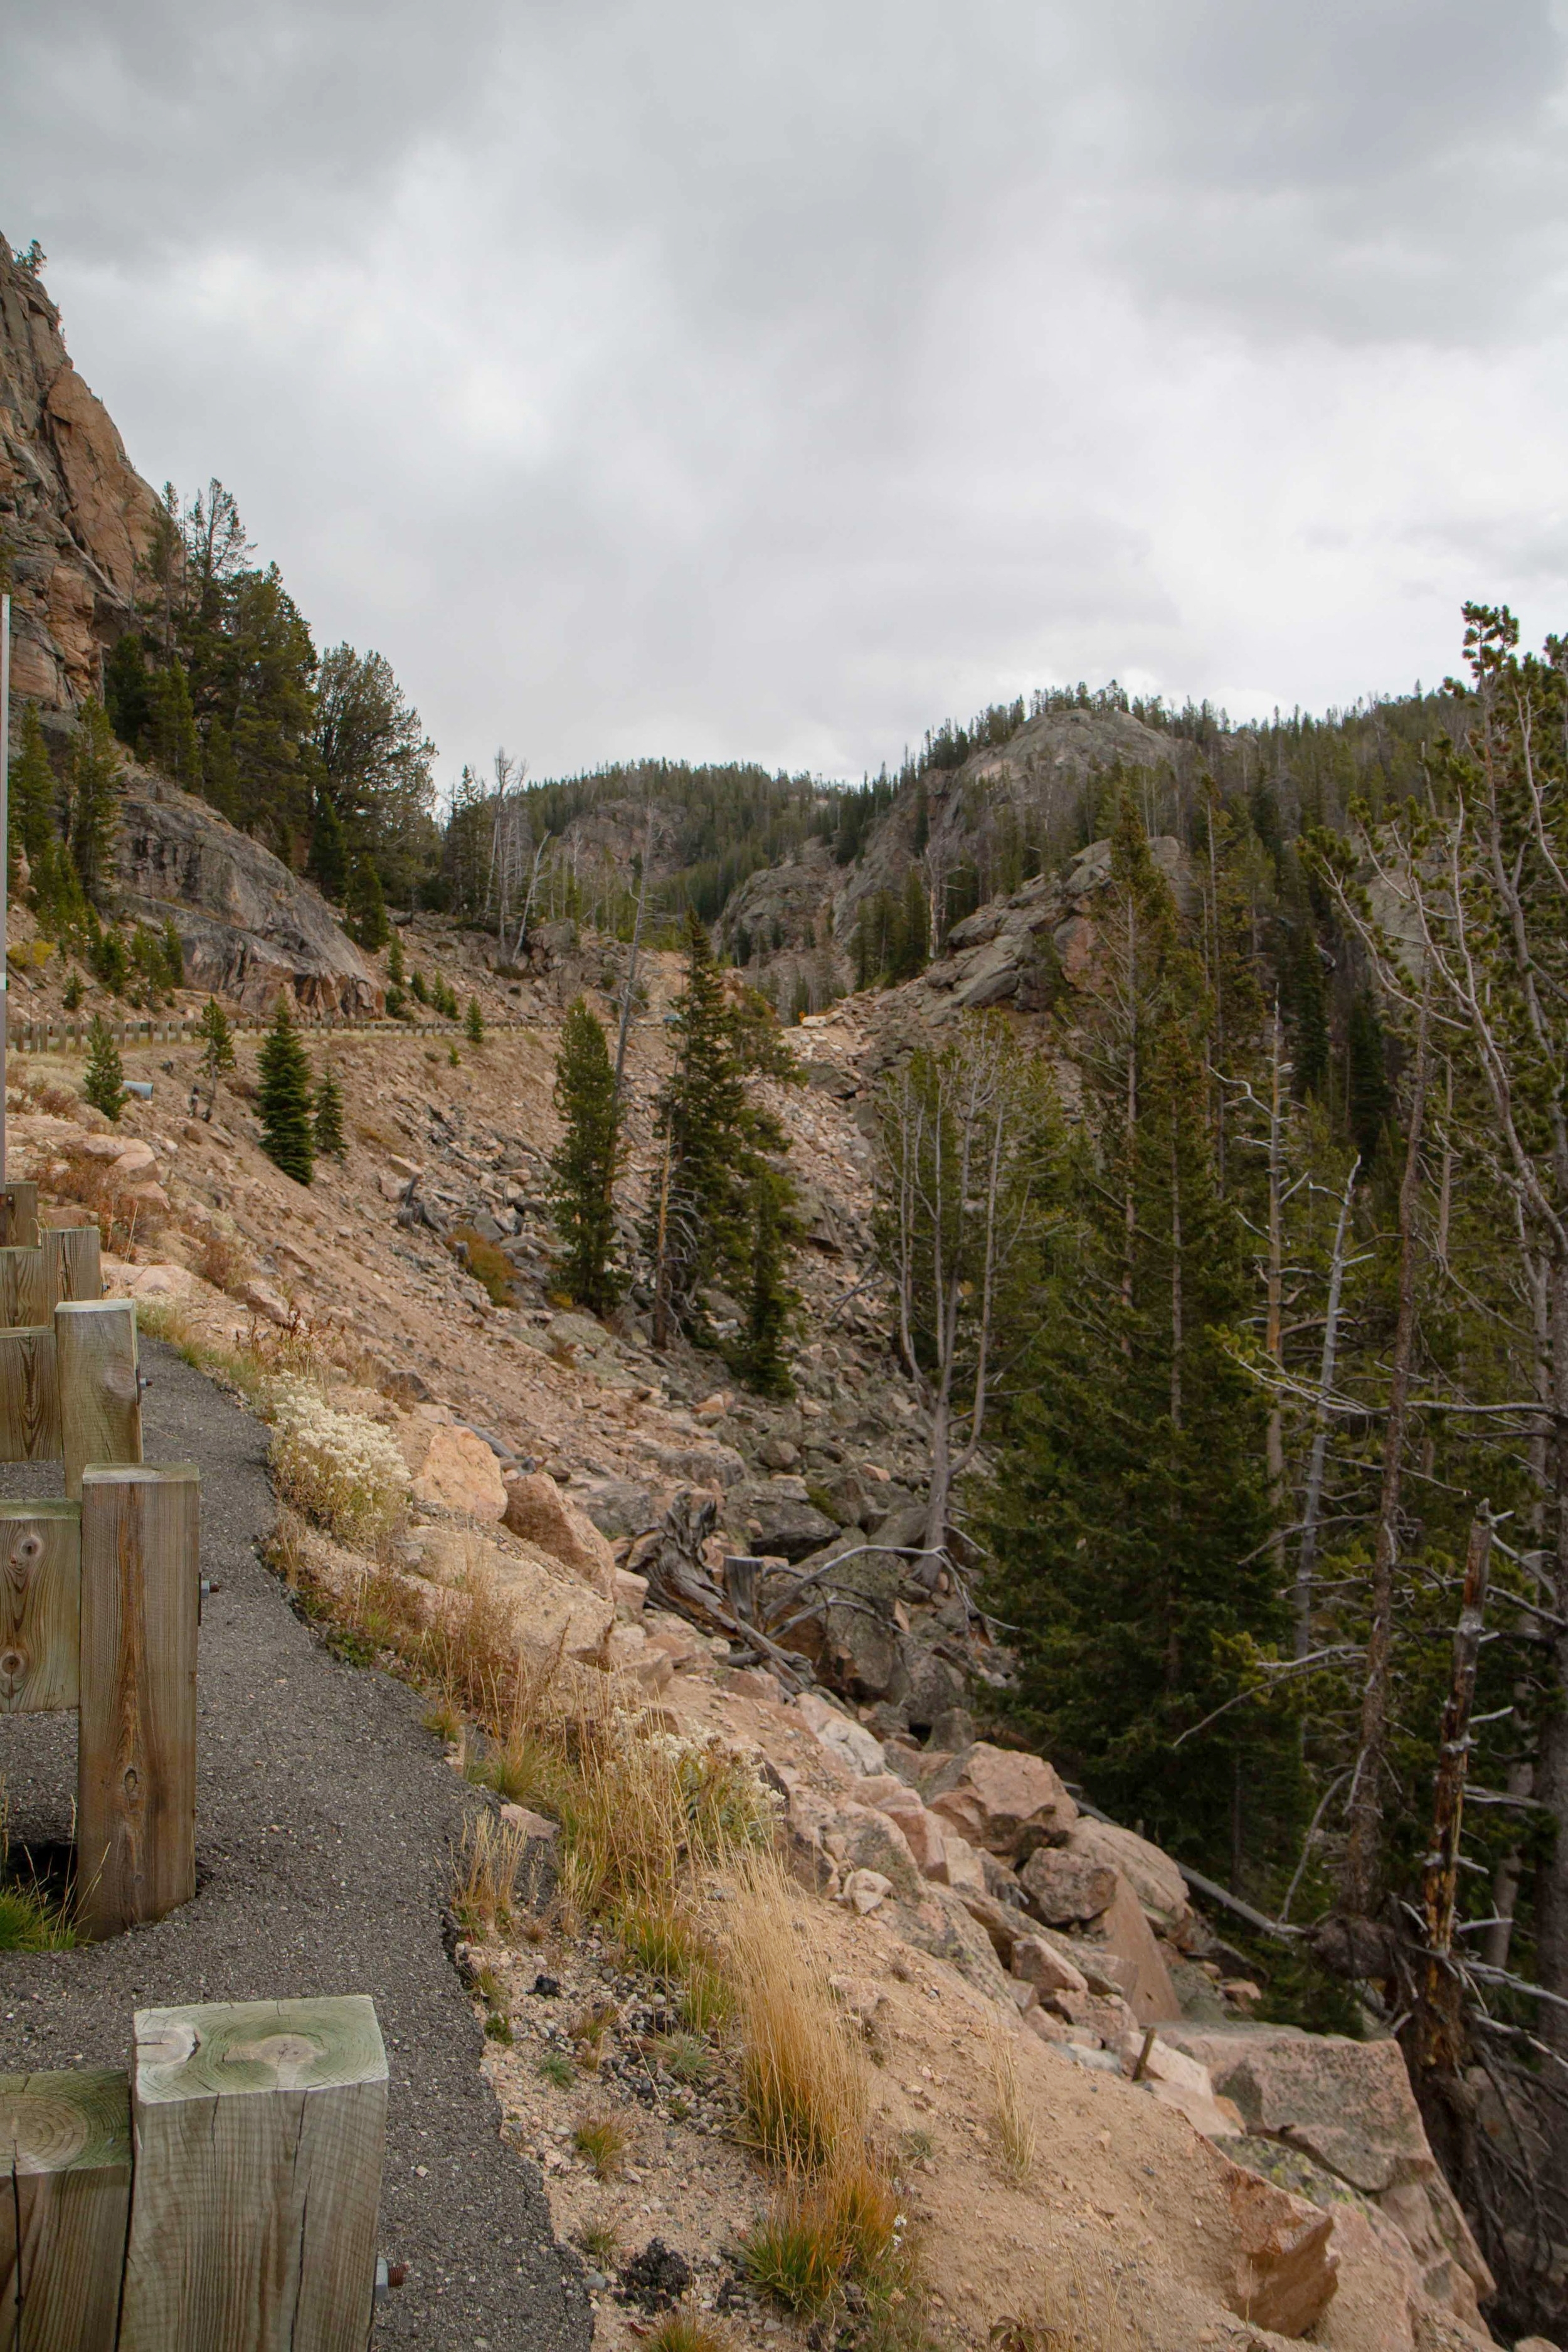 Beartooth Highway & Pass in Wyoming and Montana. Gorgeous scenic views with travel blogger Bri Sul